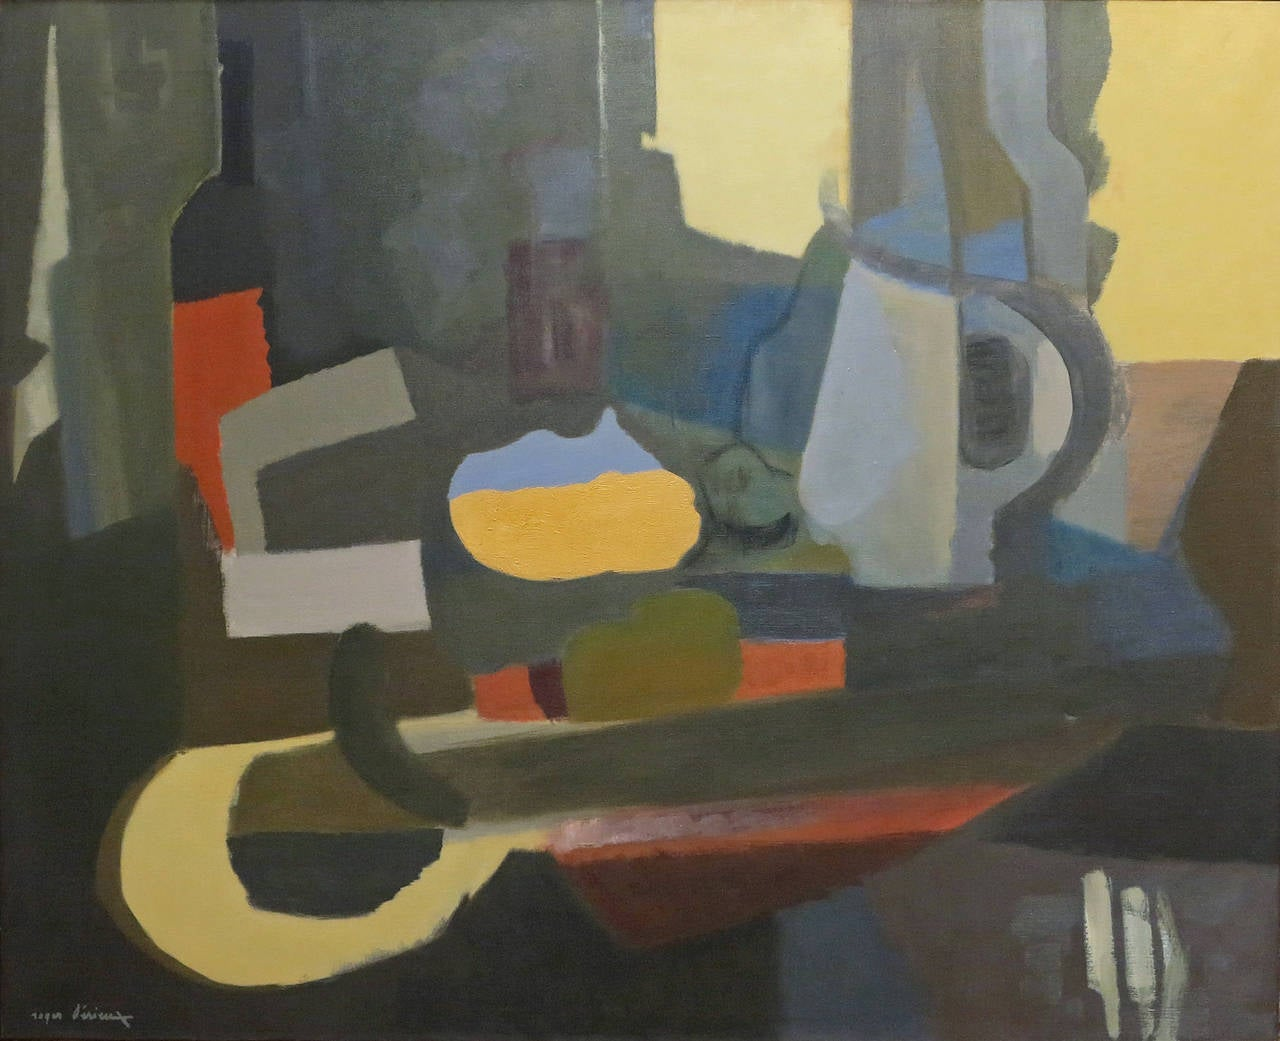 Roger Derieux French, B.1922- La Bouteille de Vin  Oil on canvas 32 by 39 in. W/frame 33 by 40 in. Signed lower right  Biography: Roger was born in Paris in 1922, after having lived and worked in Paris and the Ardèche, Roger DERIEUX up his studio in